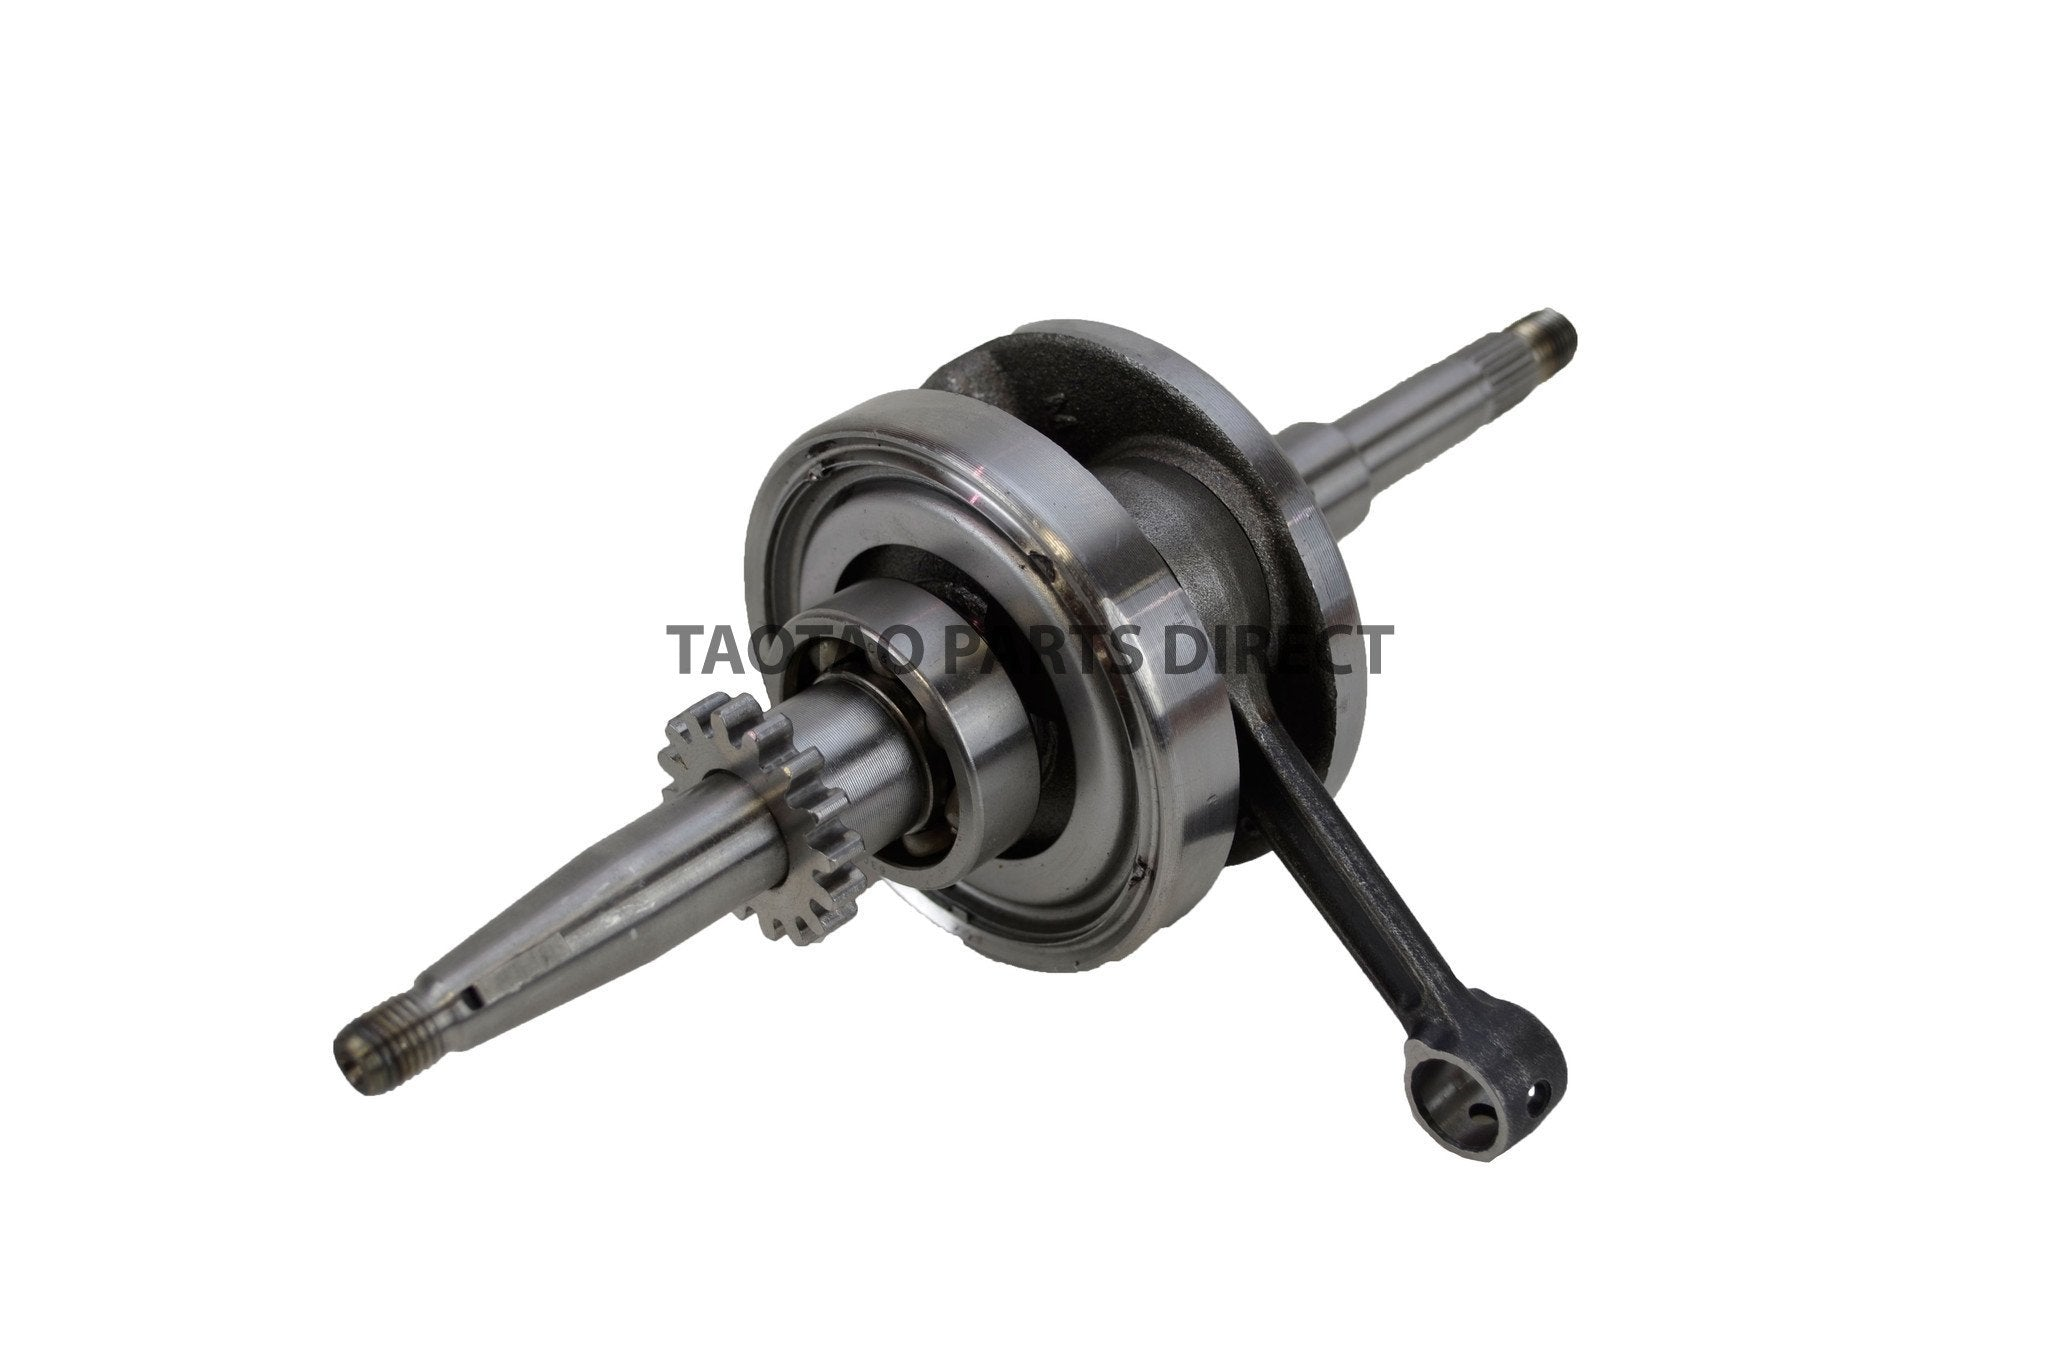 49cc Crankshaft - TaoTaoPartsDirect.com